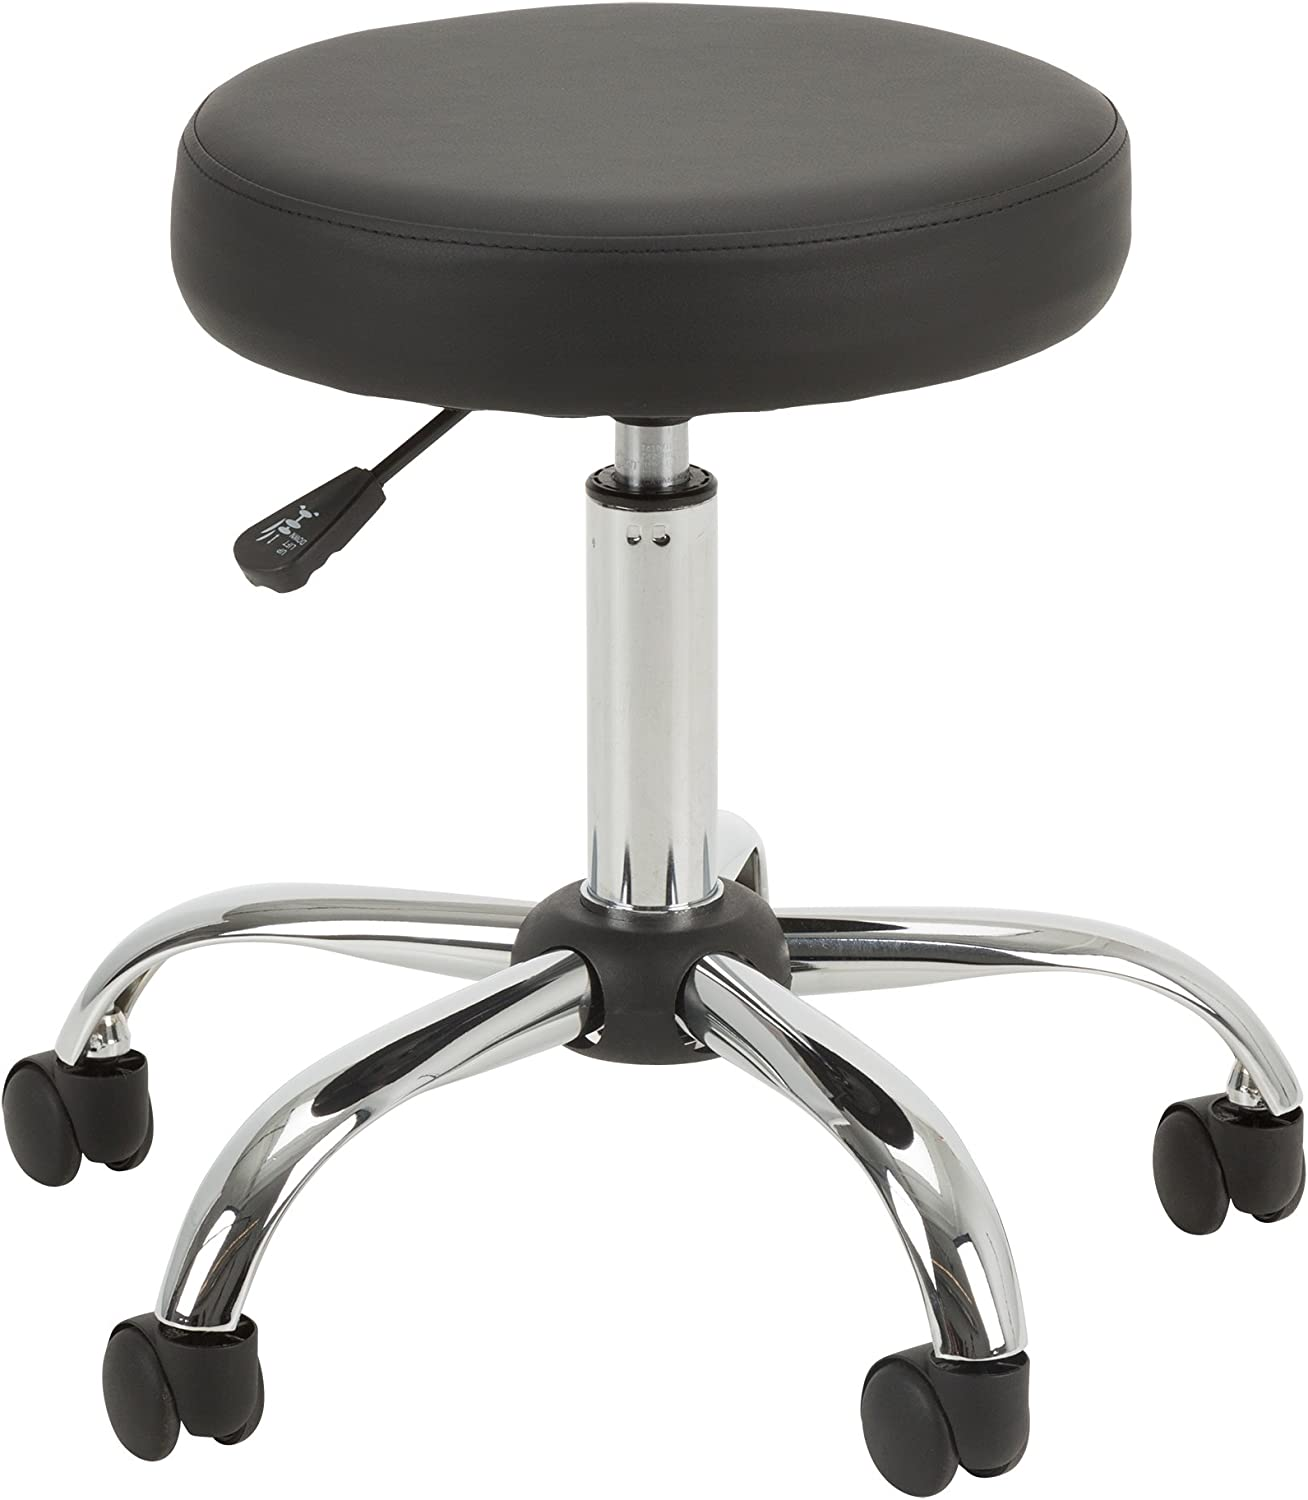 NOR-OUG1010-SO Adjustable-Height Chrome Plated Mobile Medical Stool w Extra Padding, Black